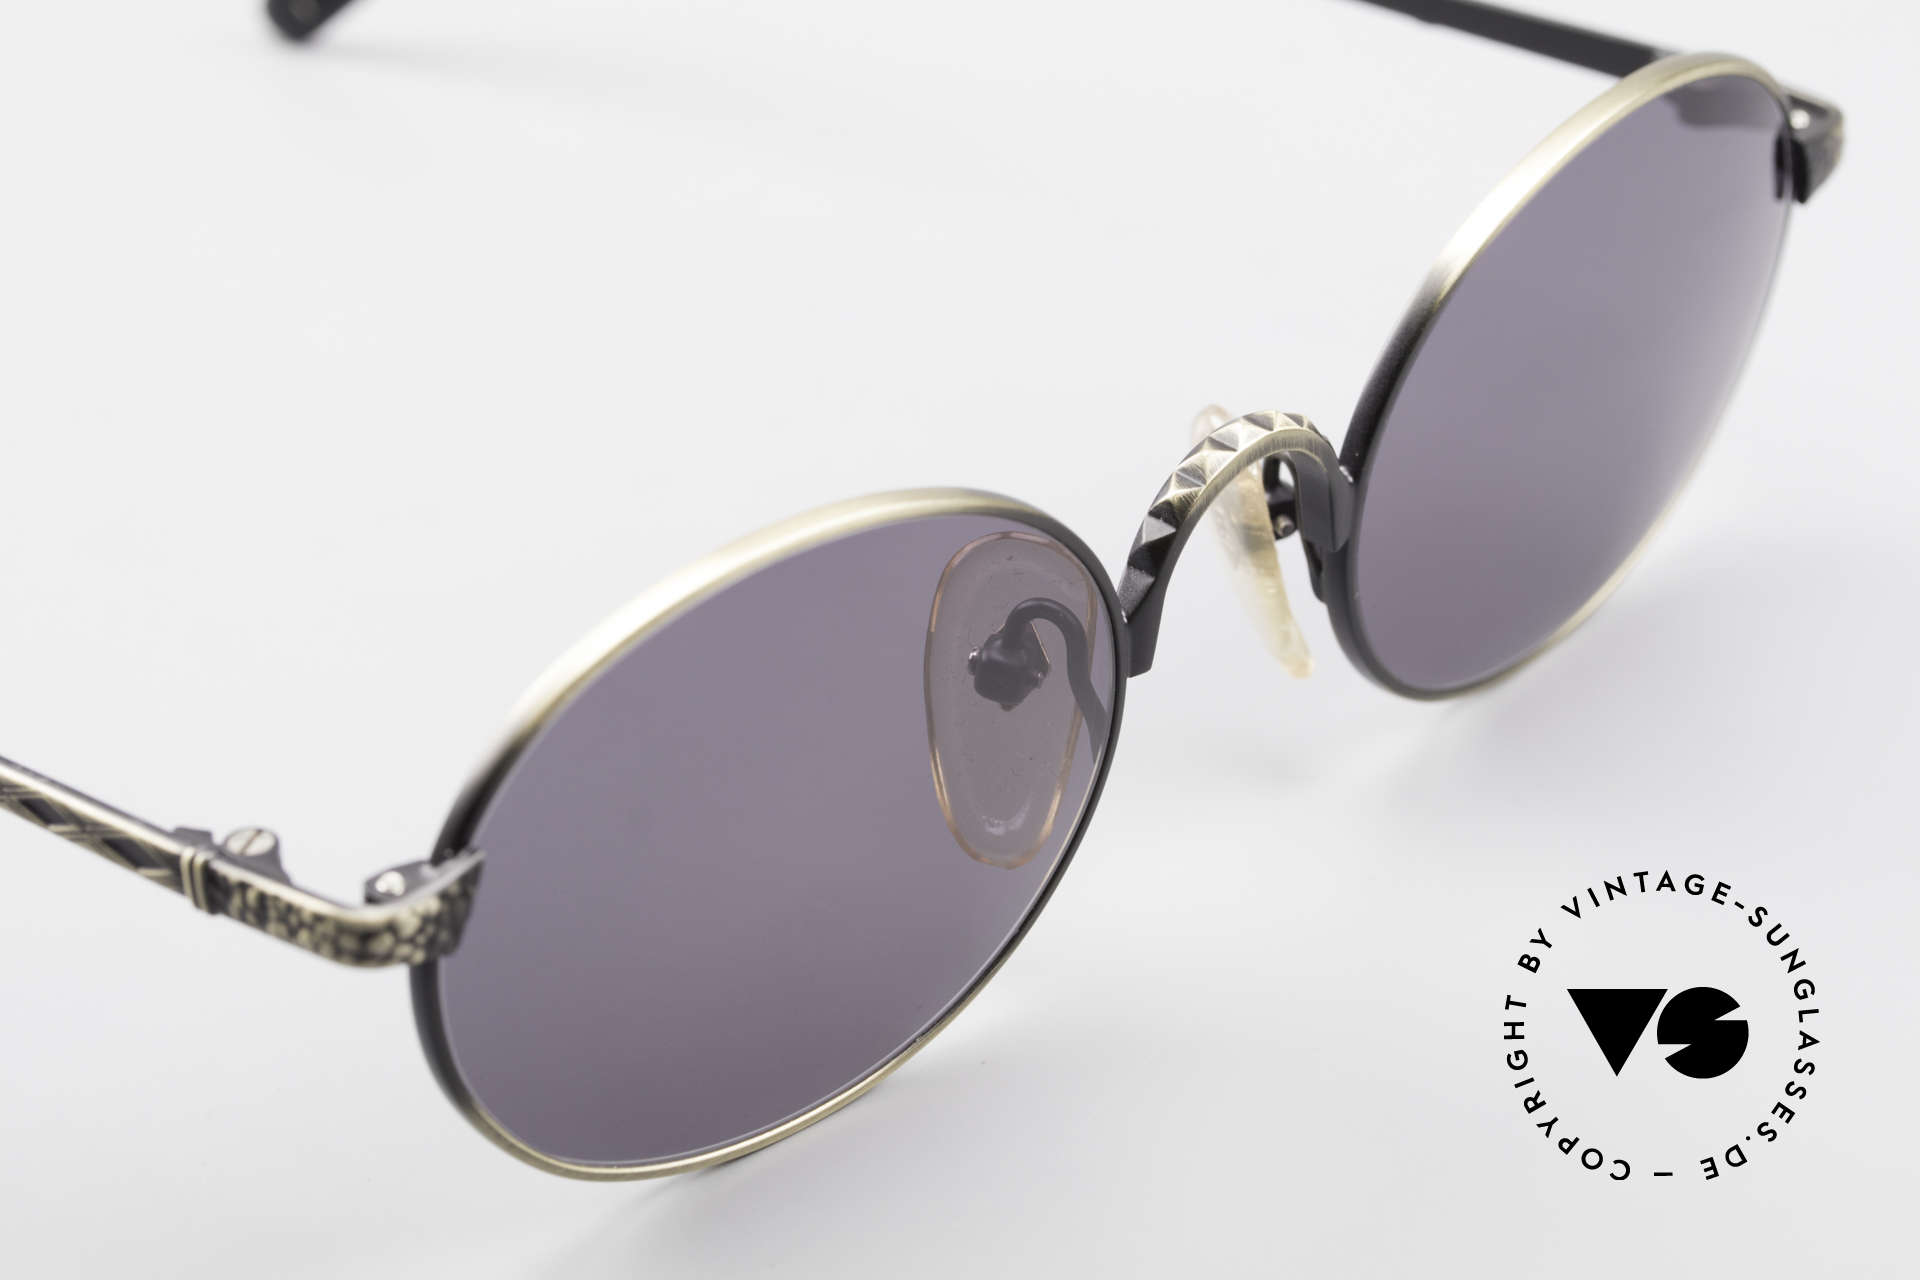 Jean Paul Gaultier 55-9672 Oval 1990's JPG Sunglasses, frame can be glazed with optical lenses, too!, Made for Men and Women